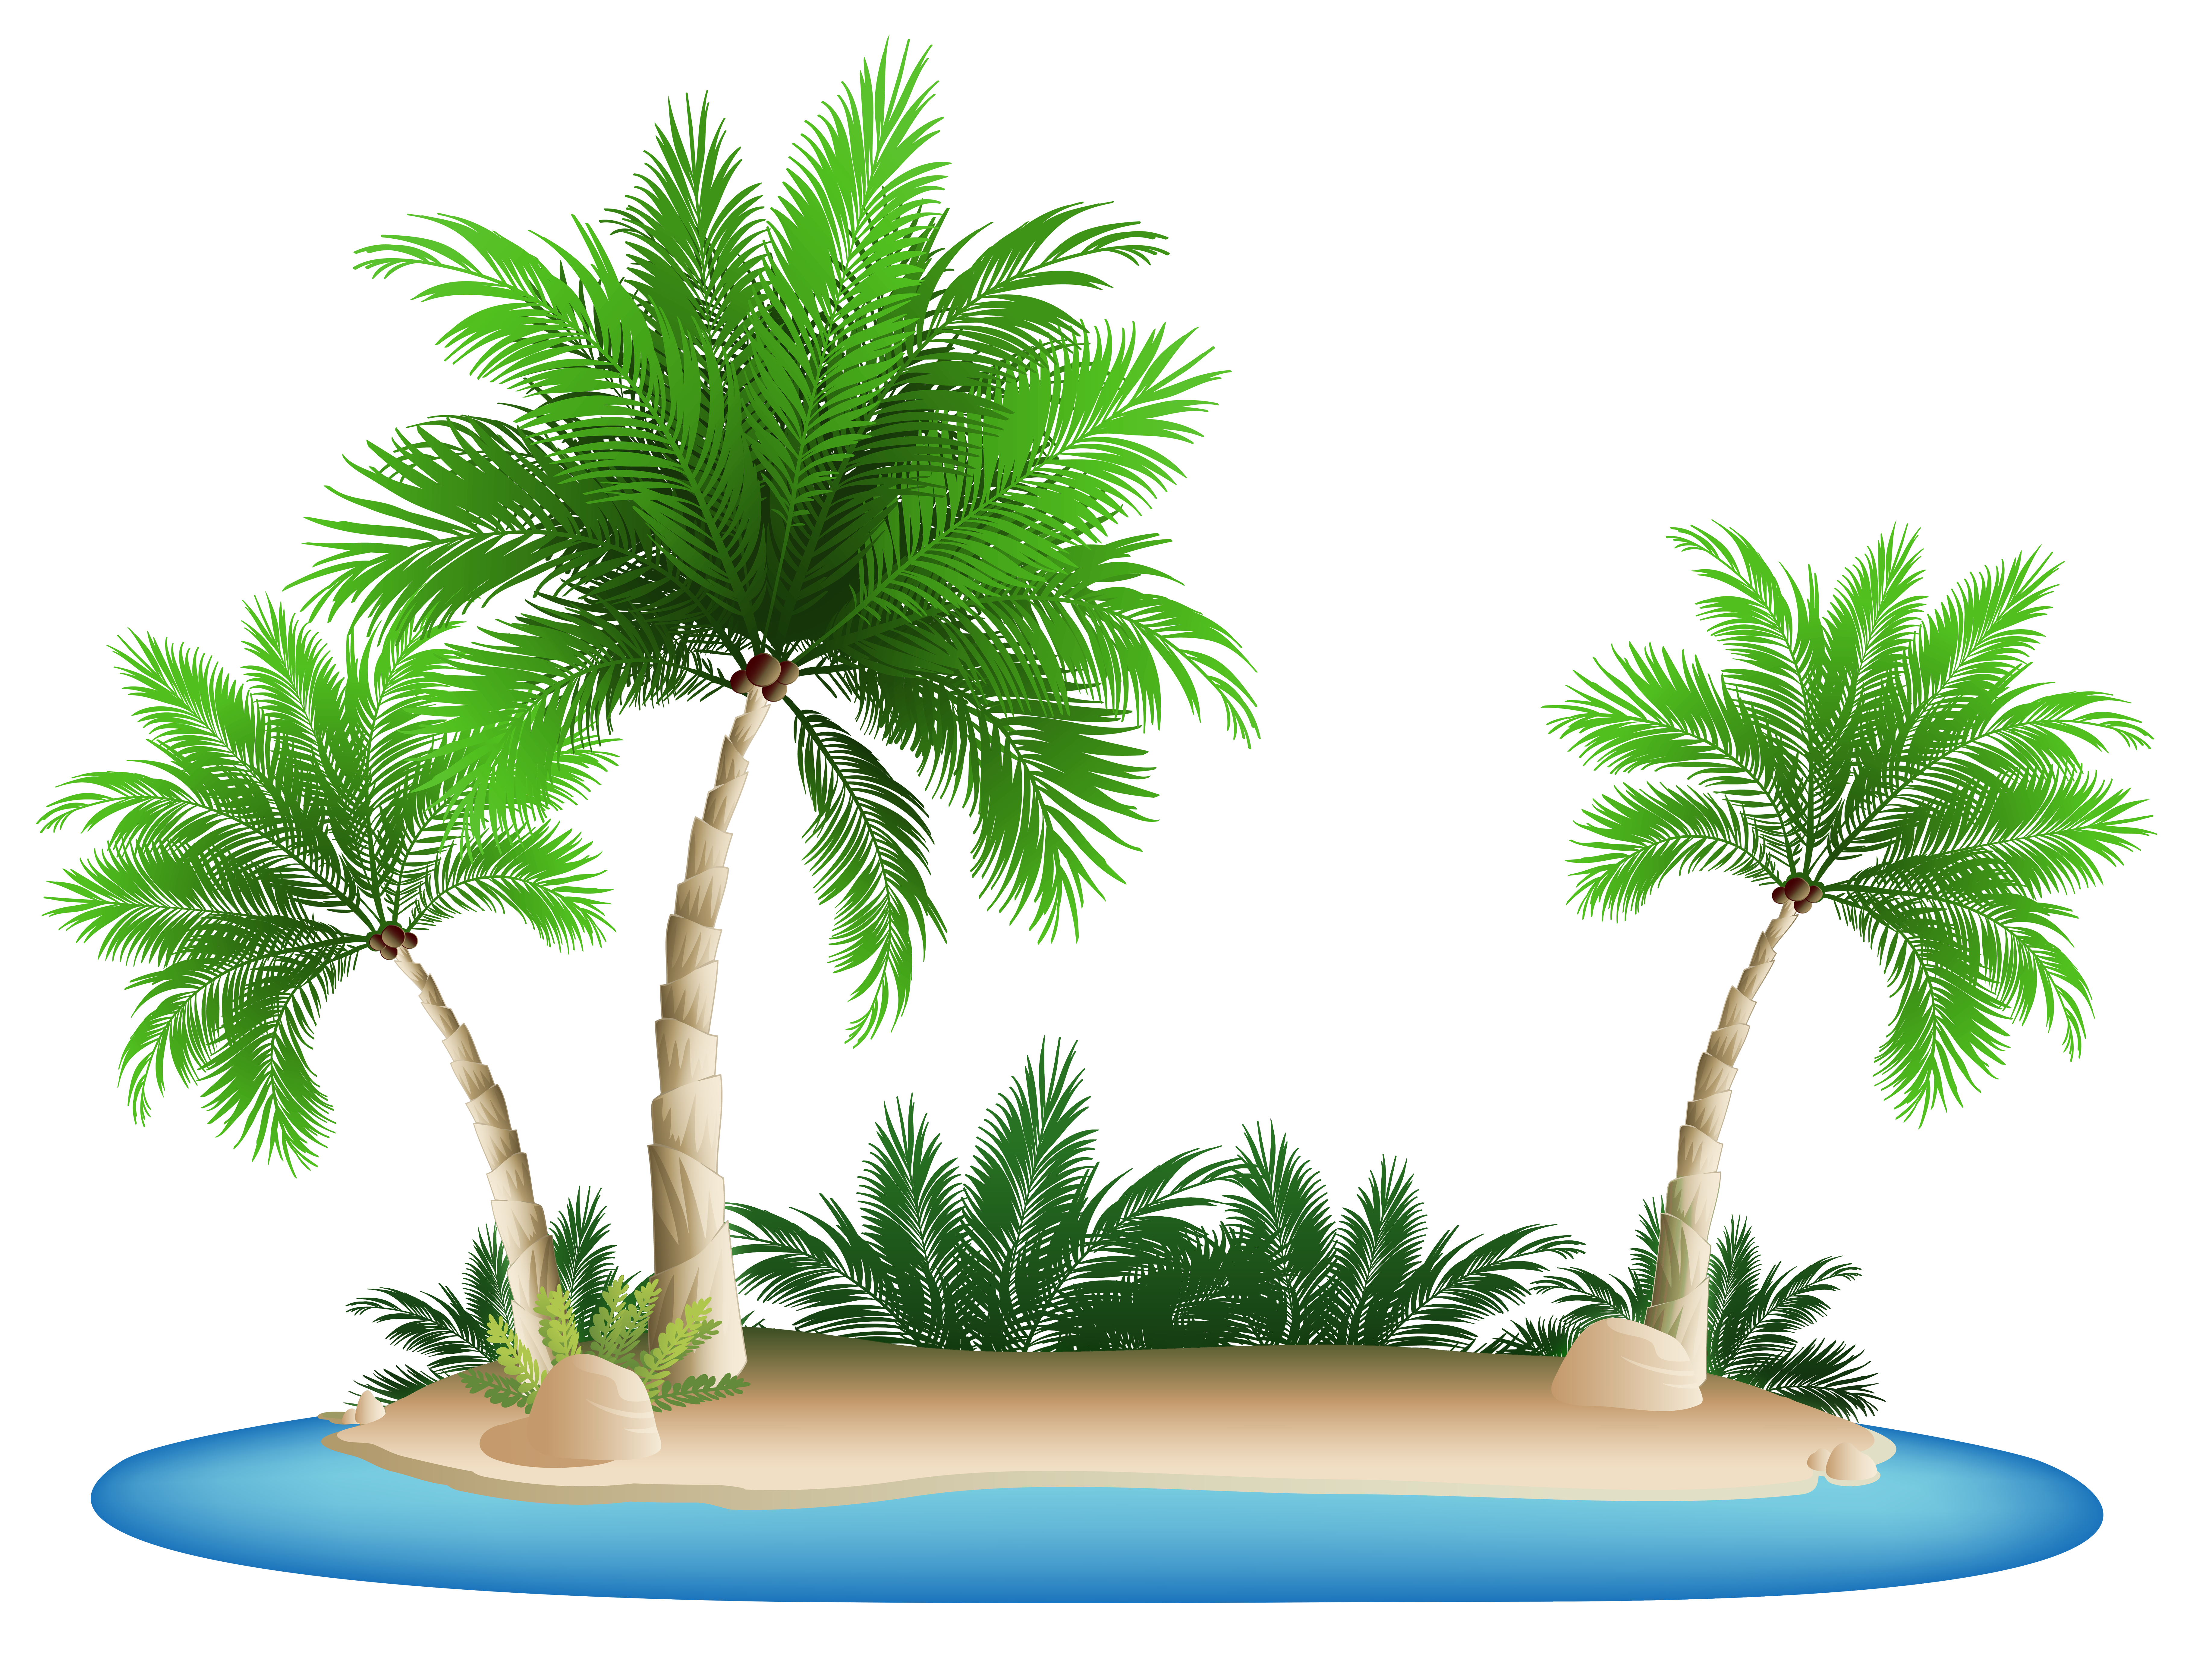 Tree clipart summer. Palm trees island png